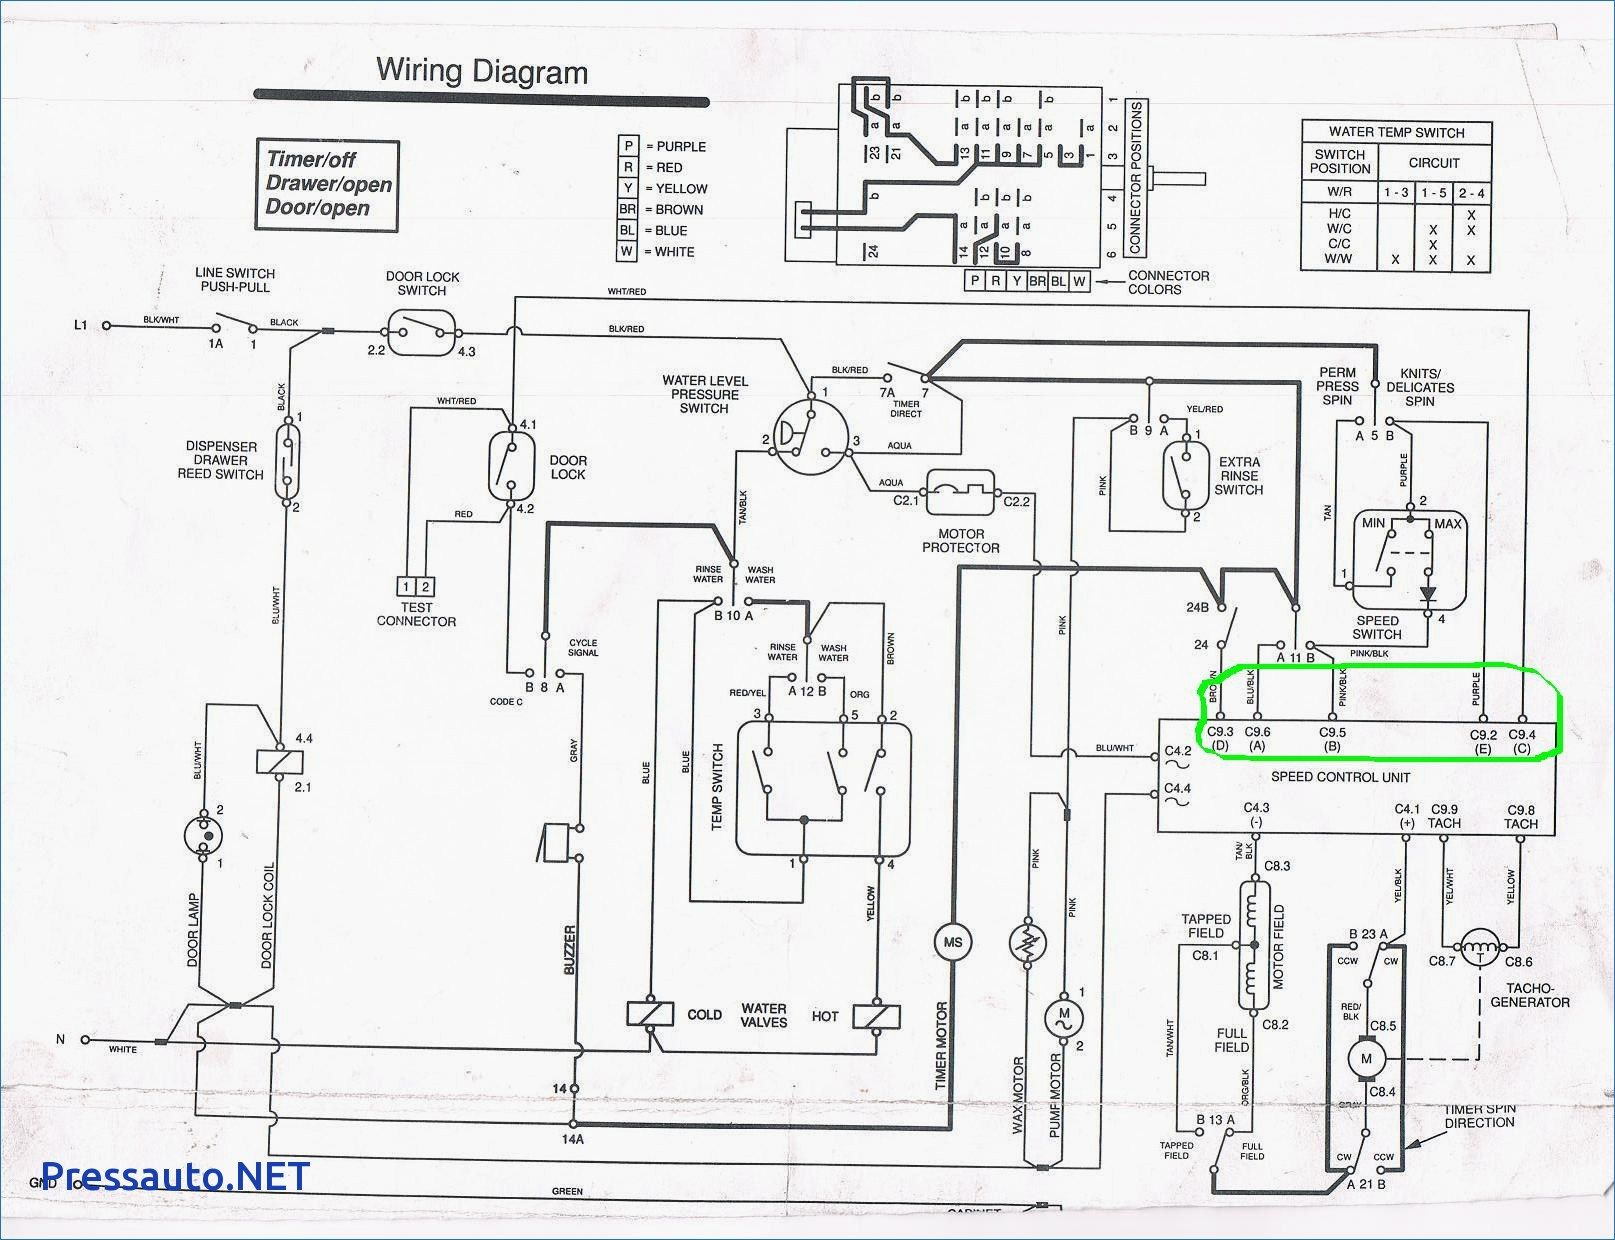 Wiring Diagram Of Washing Machine Motor Washing Machine Motor Whirlpool Dryer Whirlpool Refrigerator